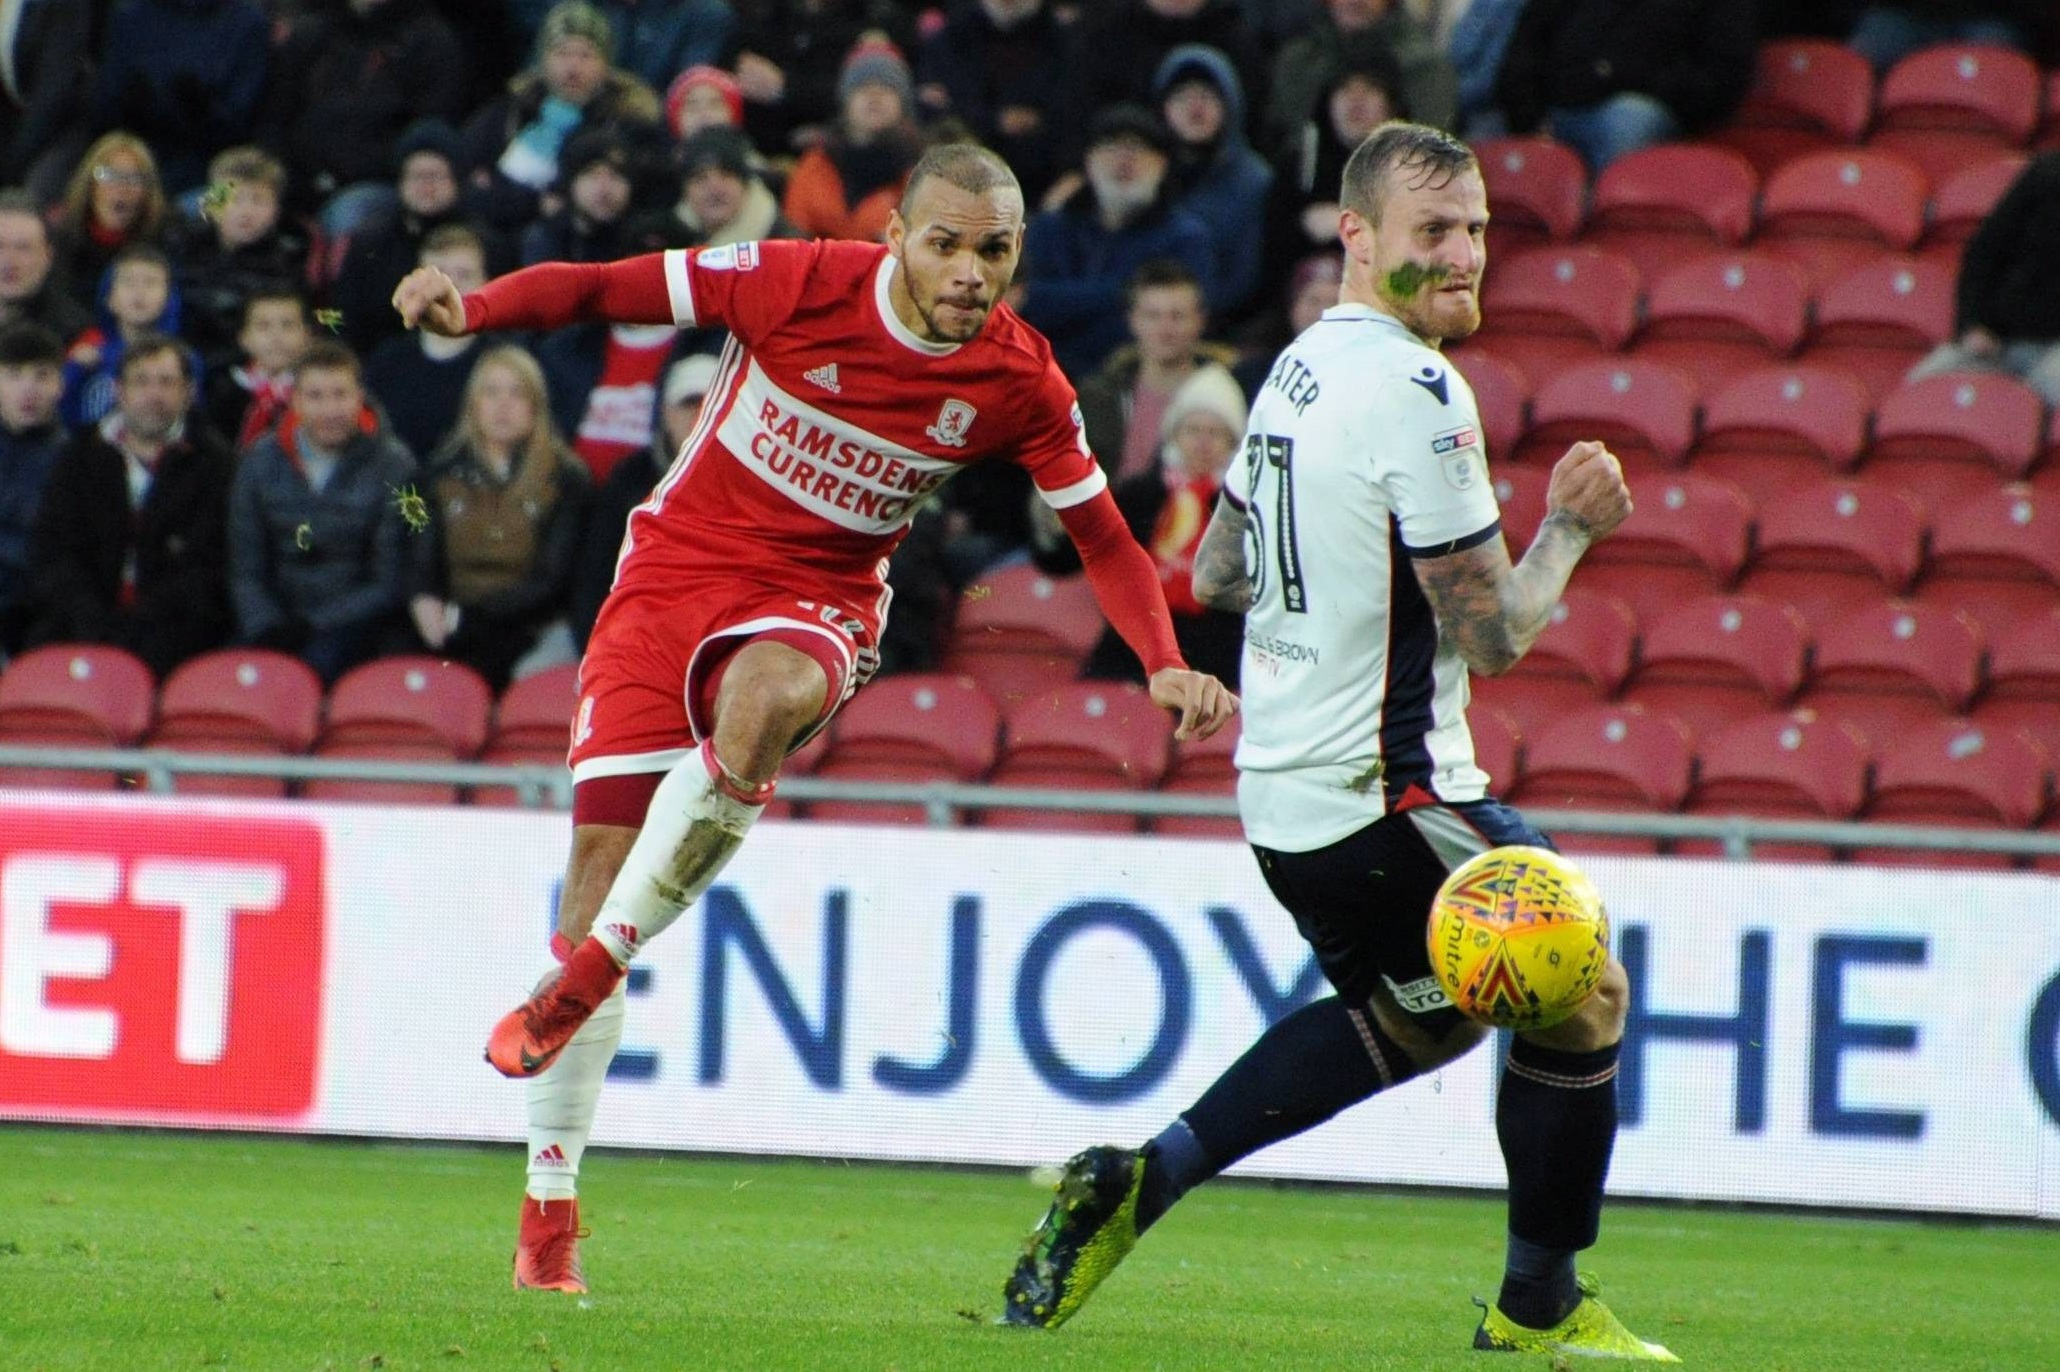 Middlesbrough forward will be offered an Italian job